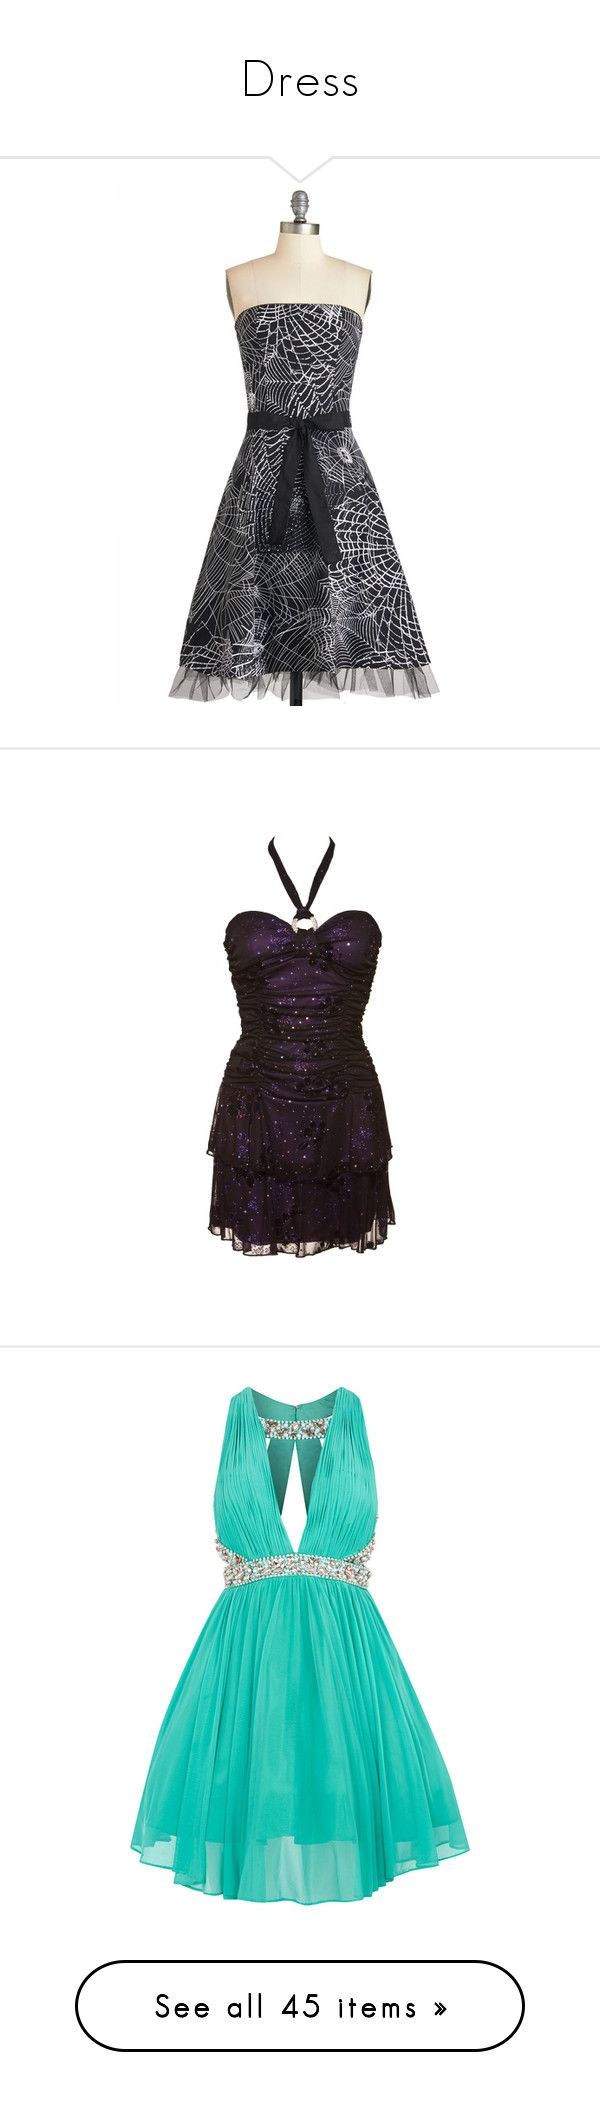 """""""Dress"""" by jessfairy88 ❤ liked on Polyvore featuring dresses, halloween, short dresses, black, apparel, fashion dress, strapless cocktail dresses, a line mini dress, strapless long dresses and short strapless dresses"""